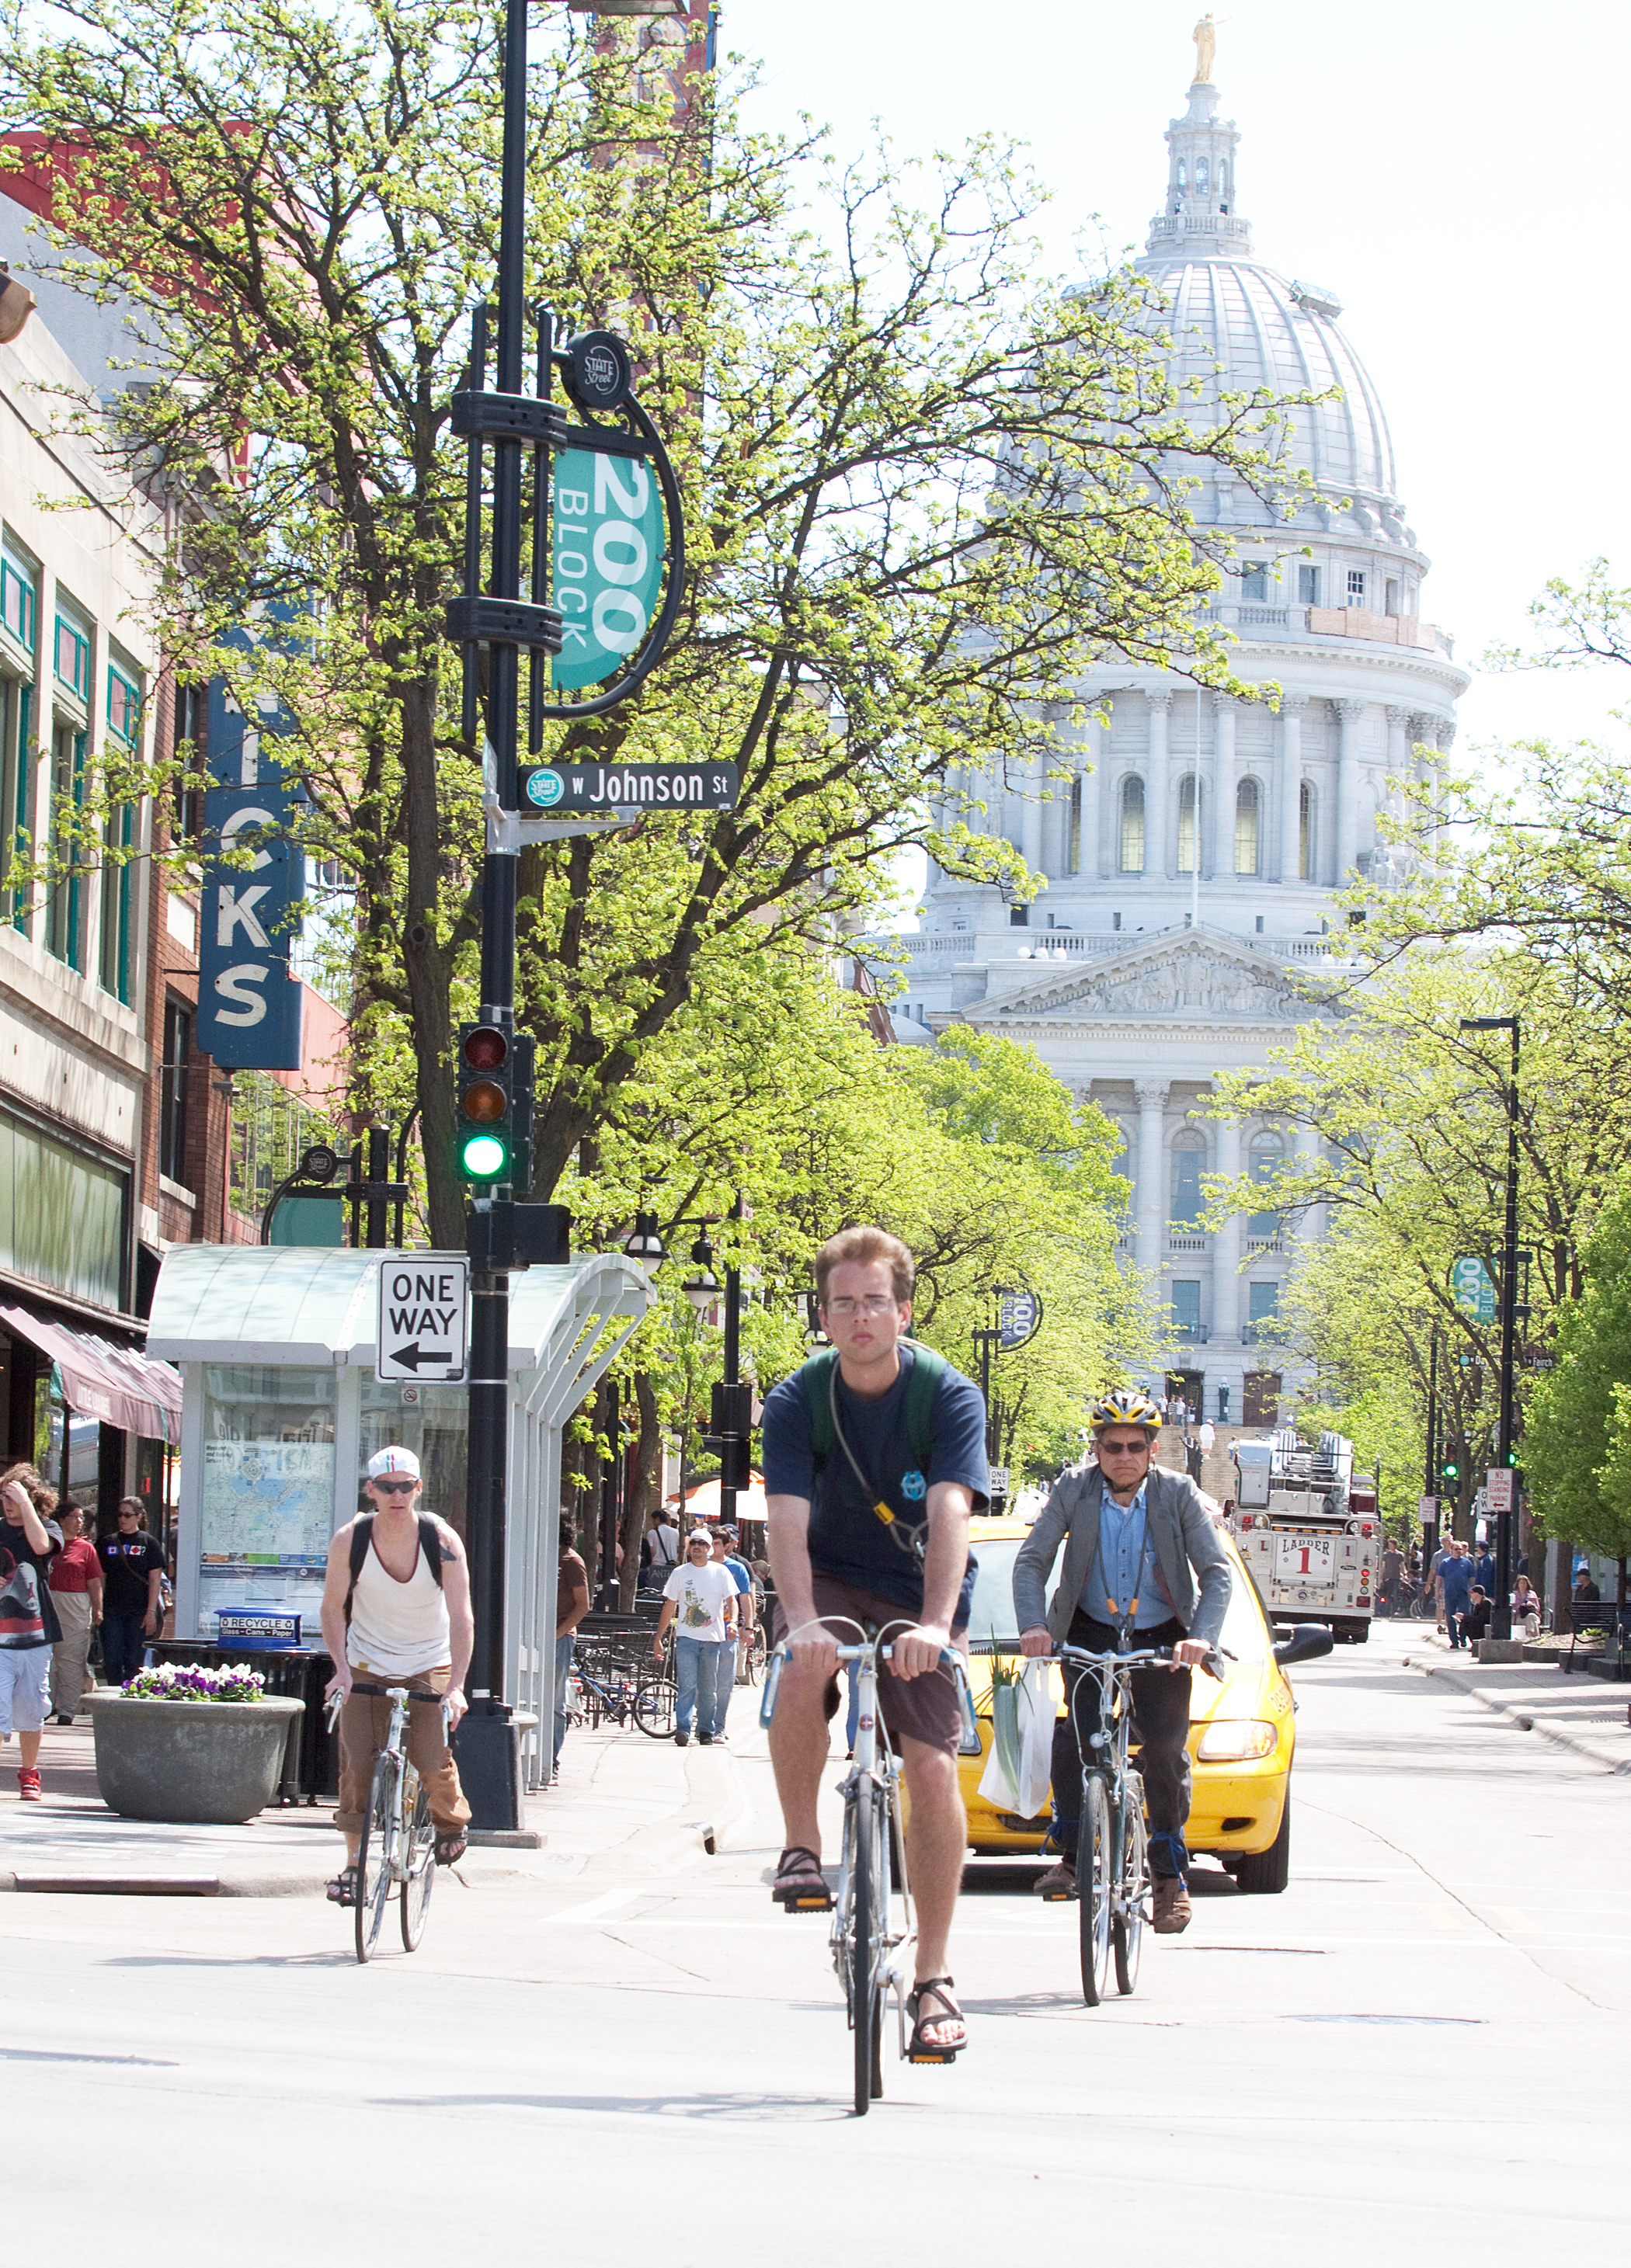 <strong>15. Madison, Wis.</strong>                                       <b>Population: </b>239,115 | <b>Percent Who Primarily Walk/Bike:</b> 14%